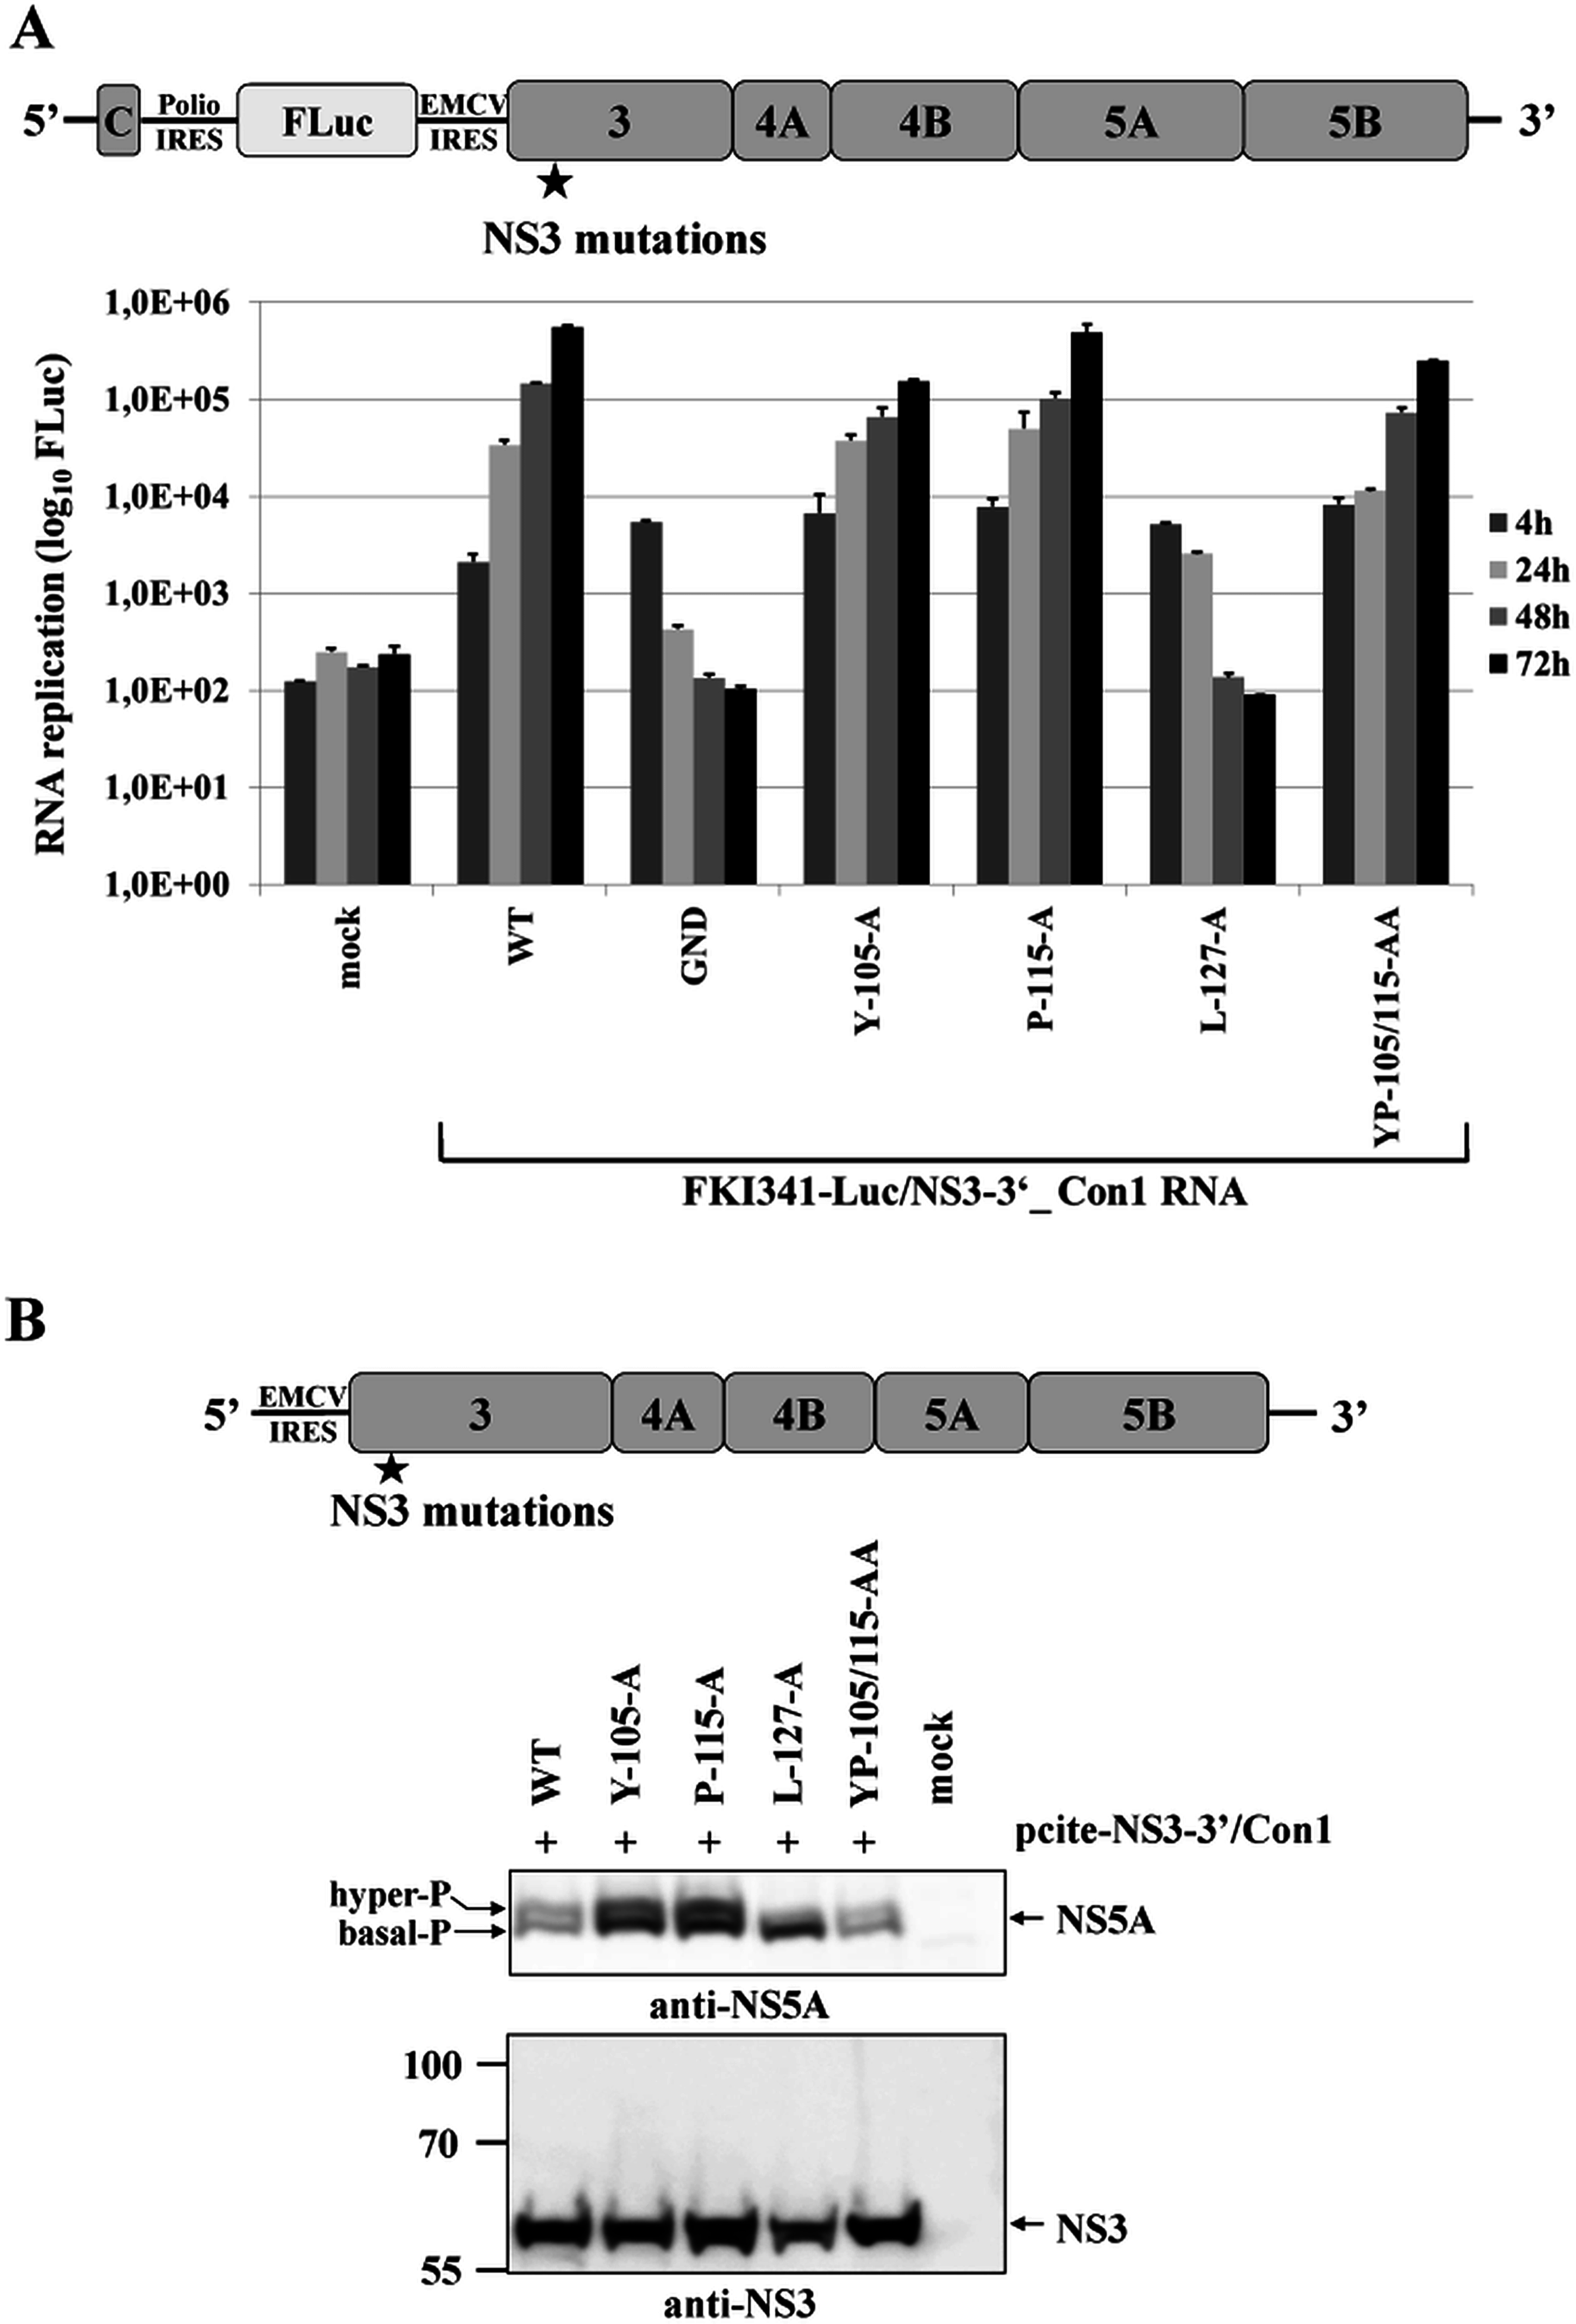 NS3-L127A inhibits RNA replication and suppresses NS5A hyperphosphorylation in the context of a HCV genotype 1b NS3-5B replicon.